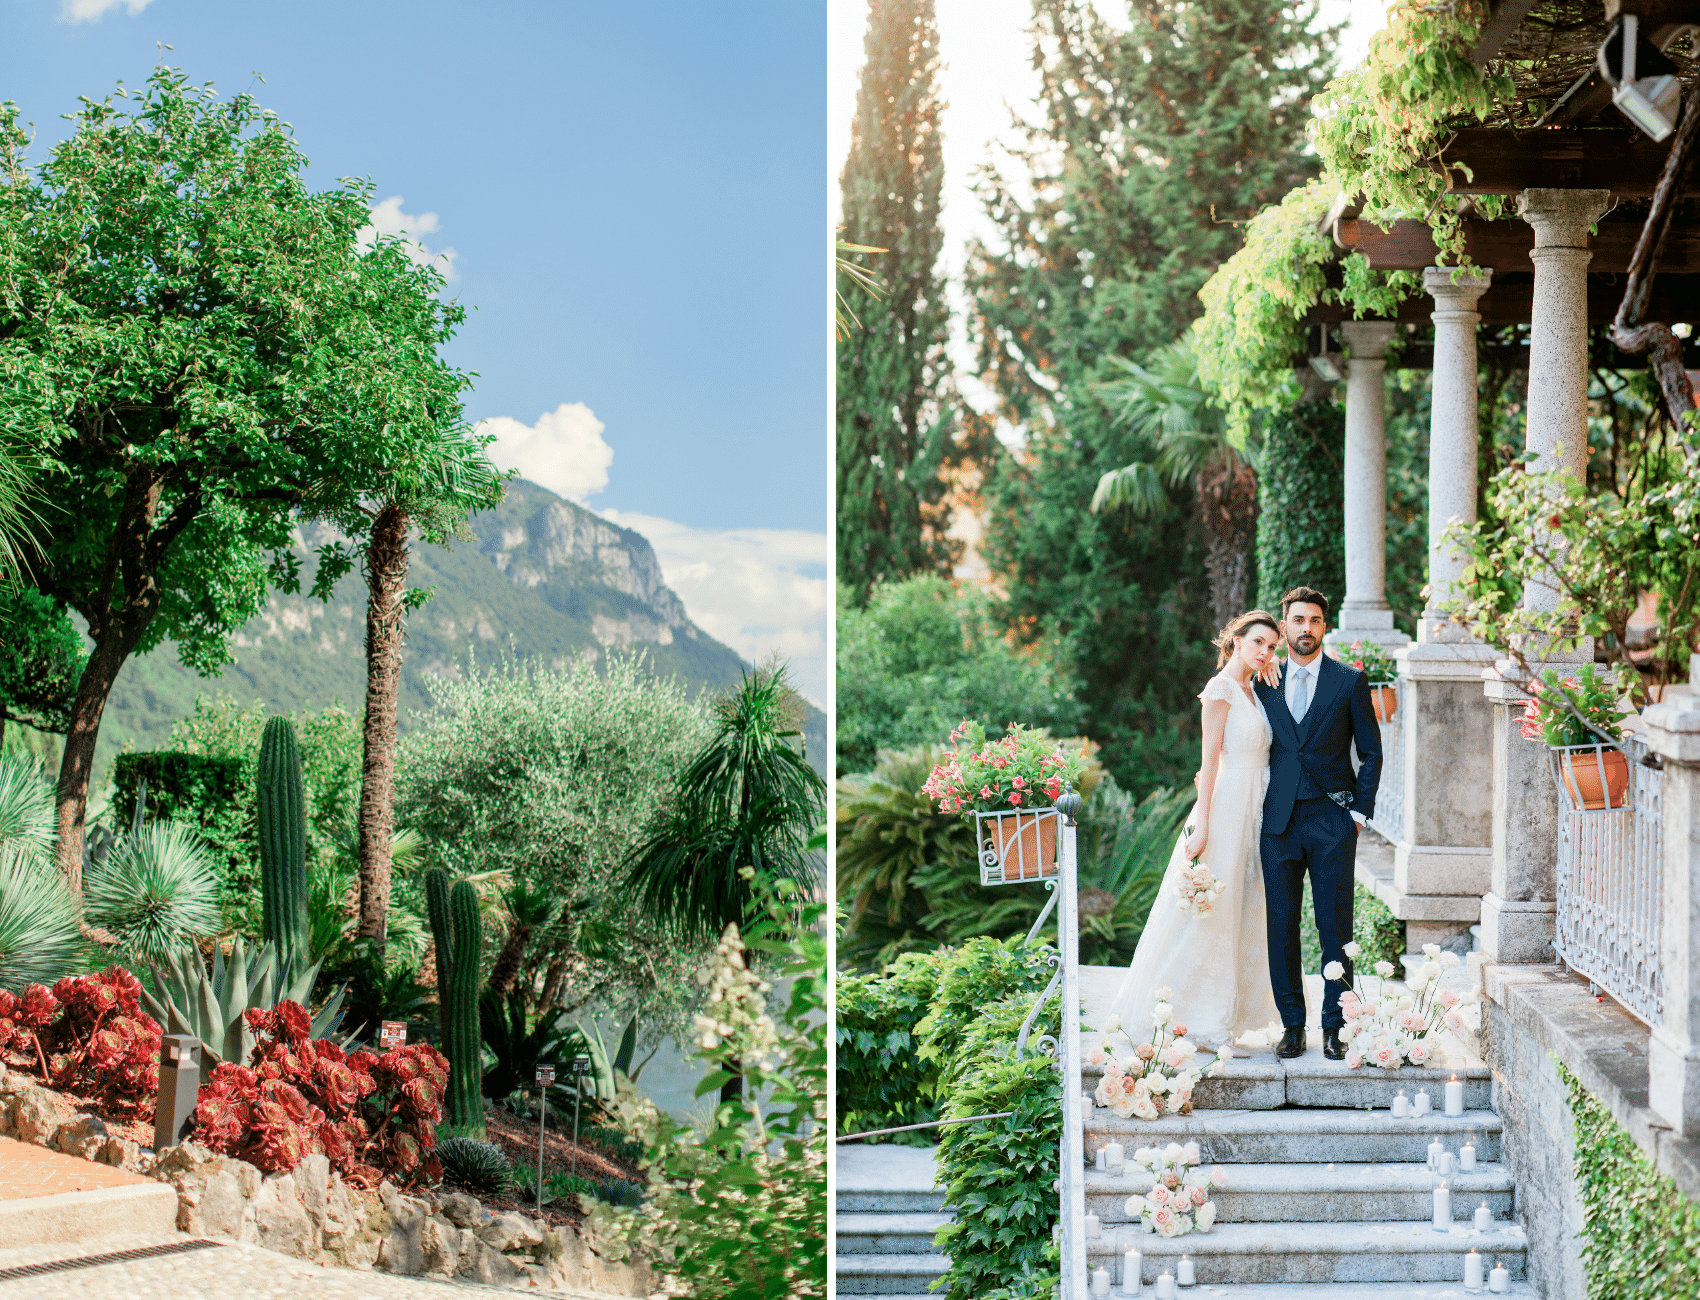 This blogpost shares over 20 luxury wedding venues in Italy